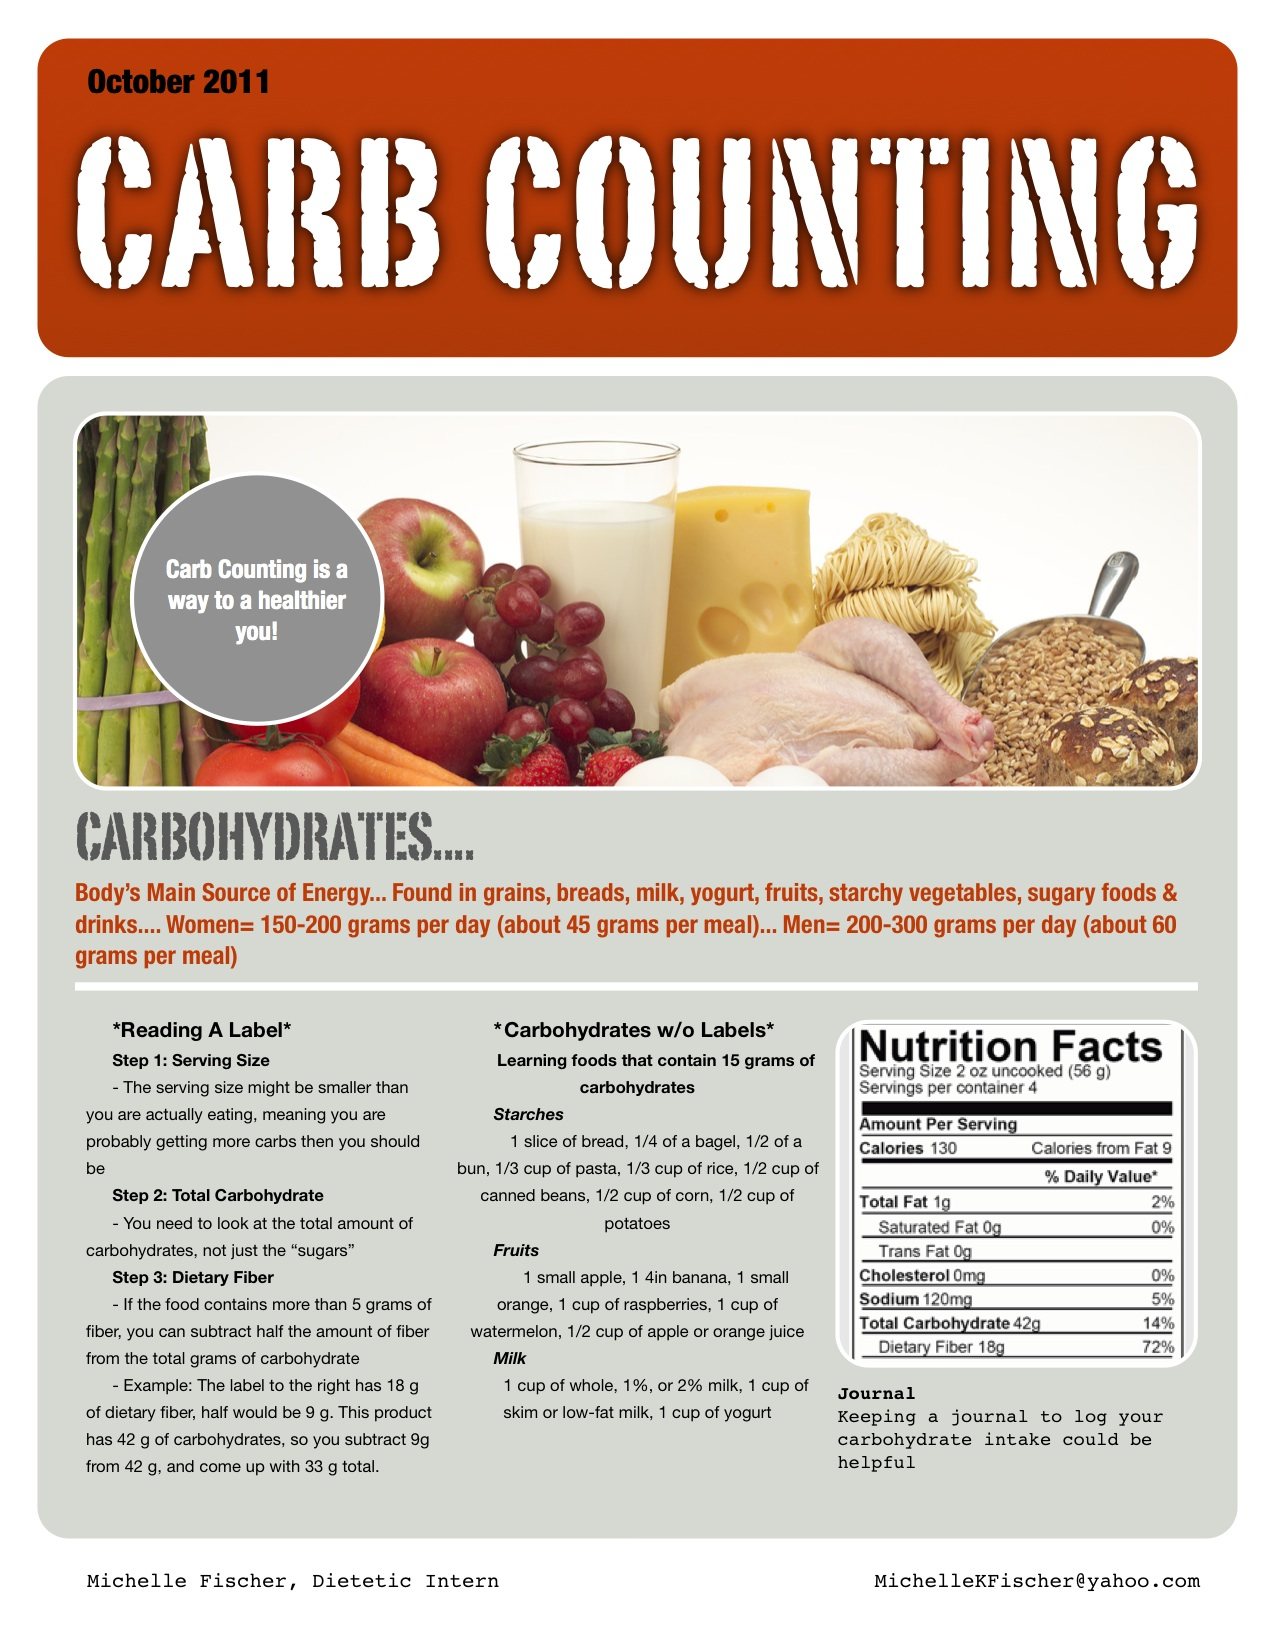 Carb Counting Handout